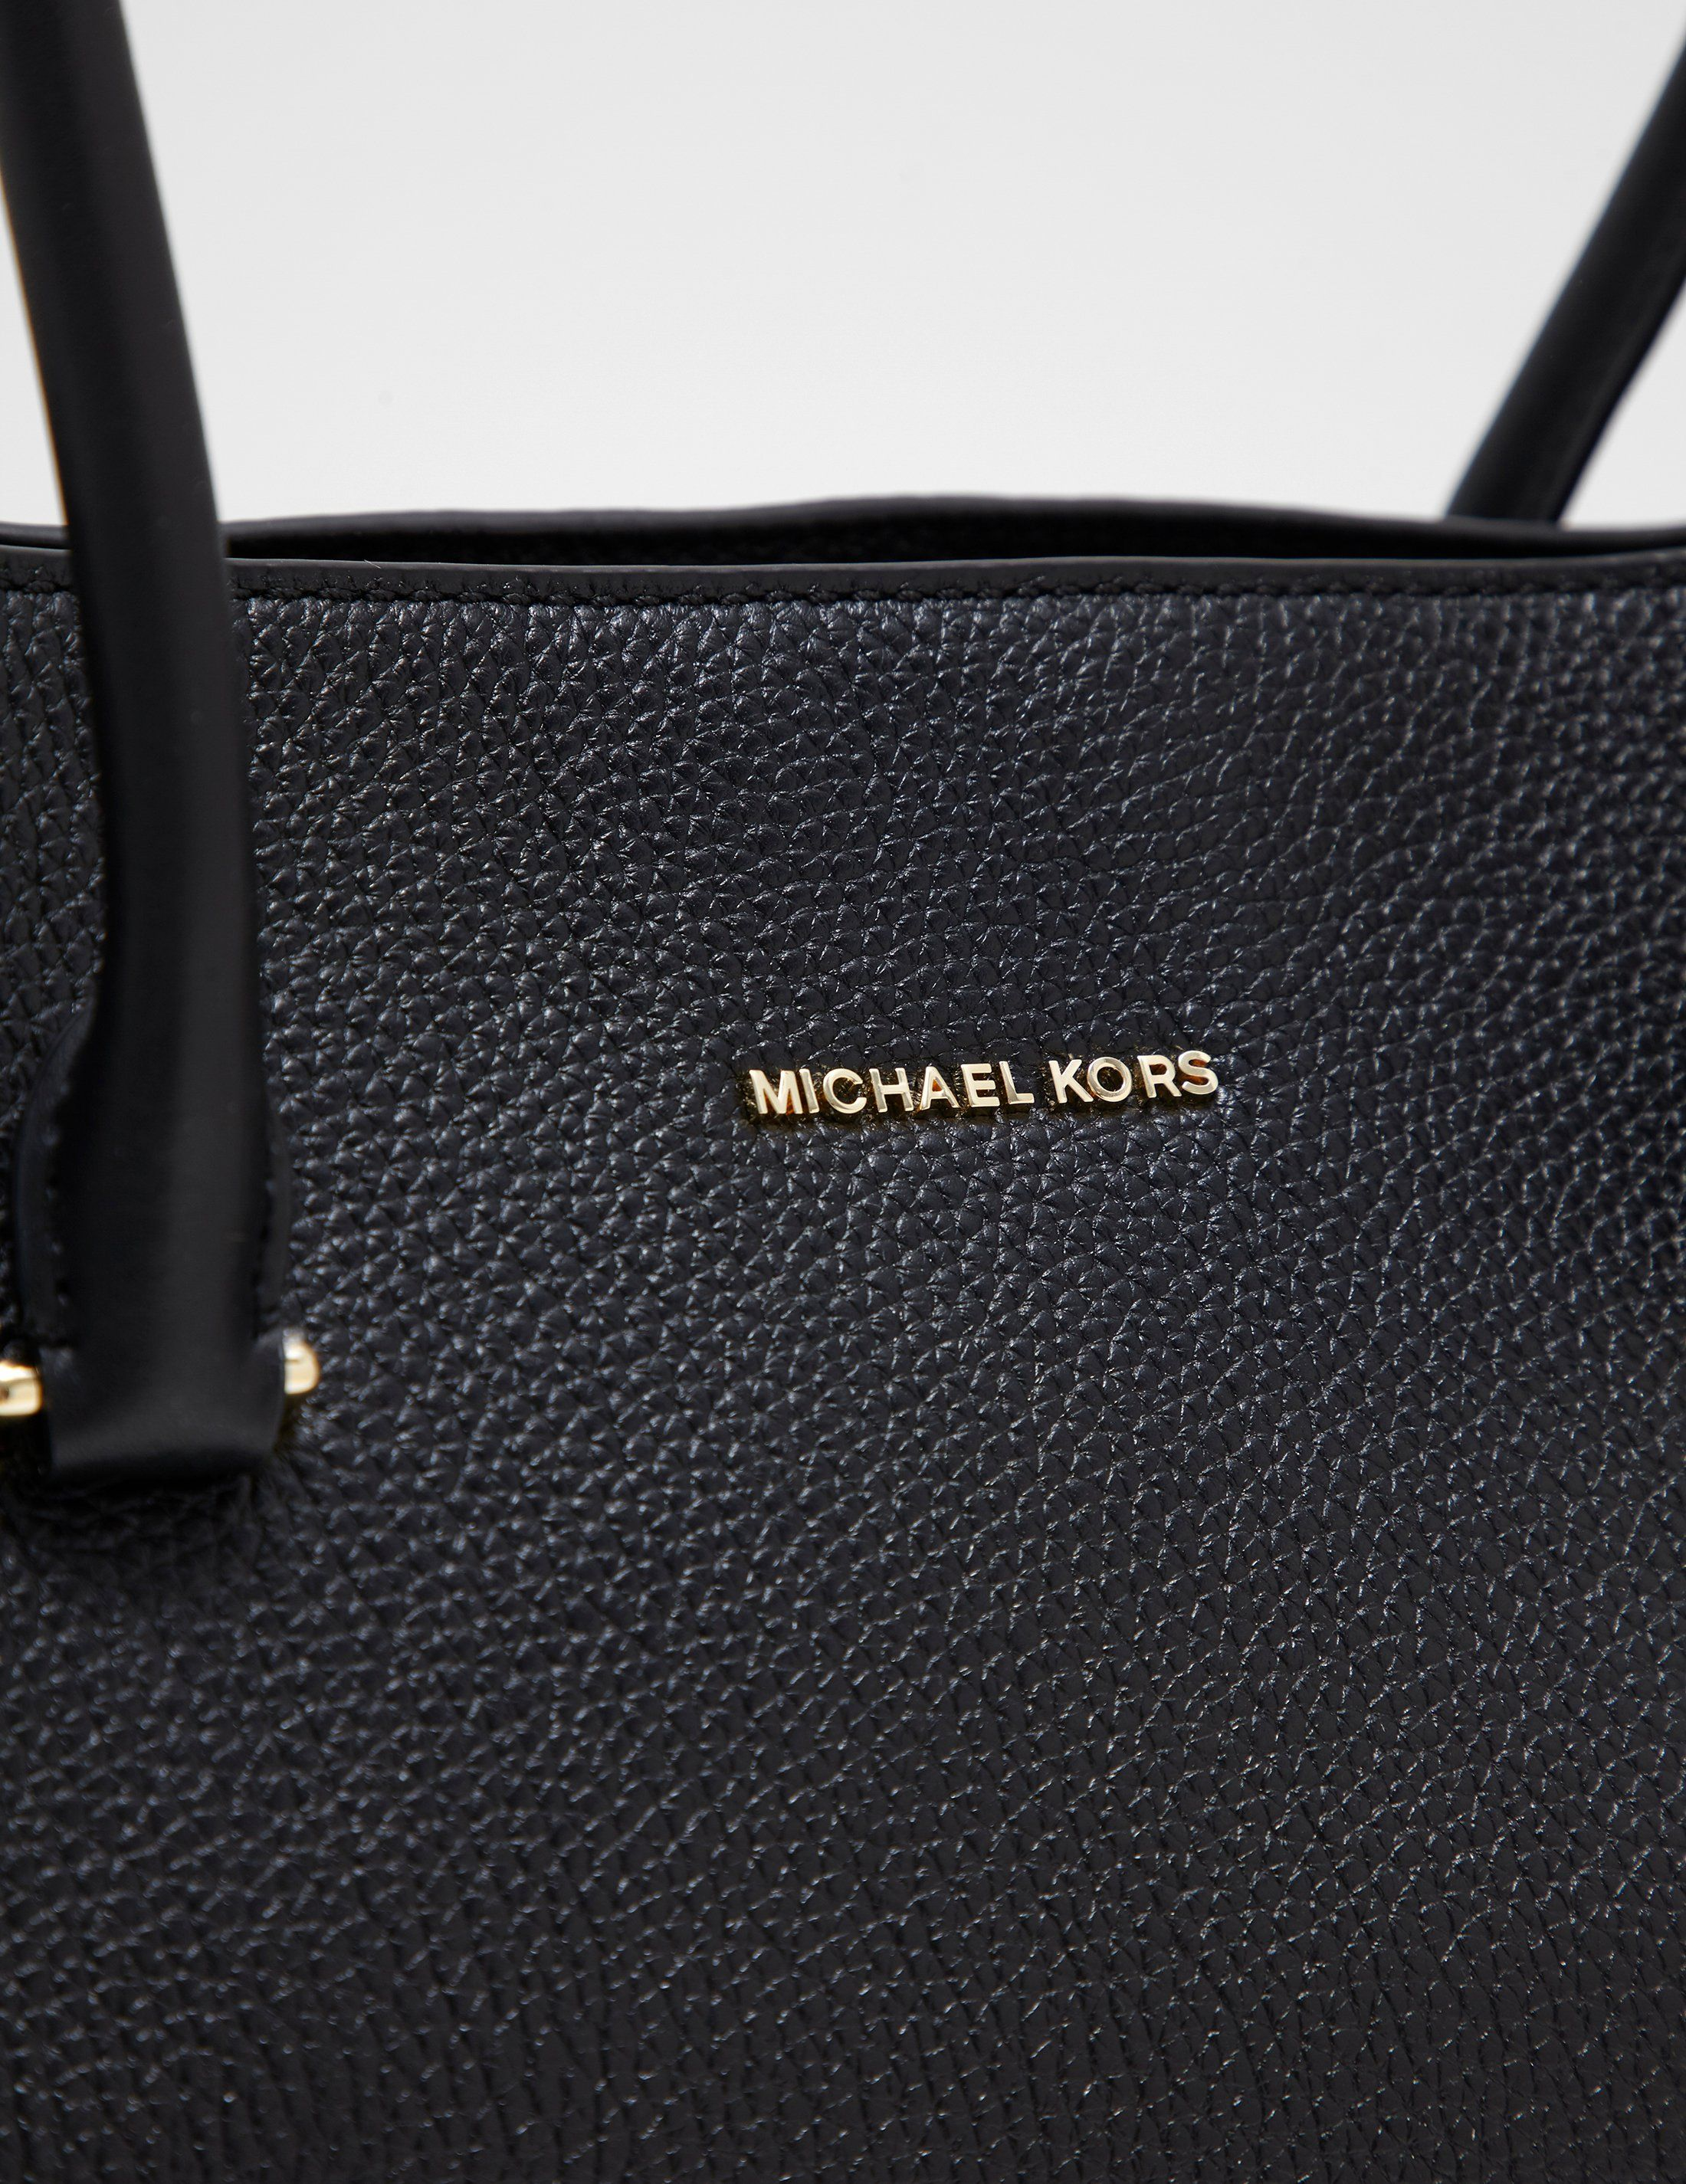 Michael Kors Borsa Shopping Bag - Online Exclusive